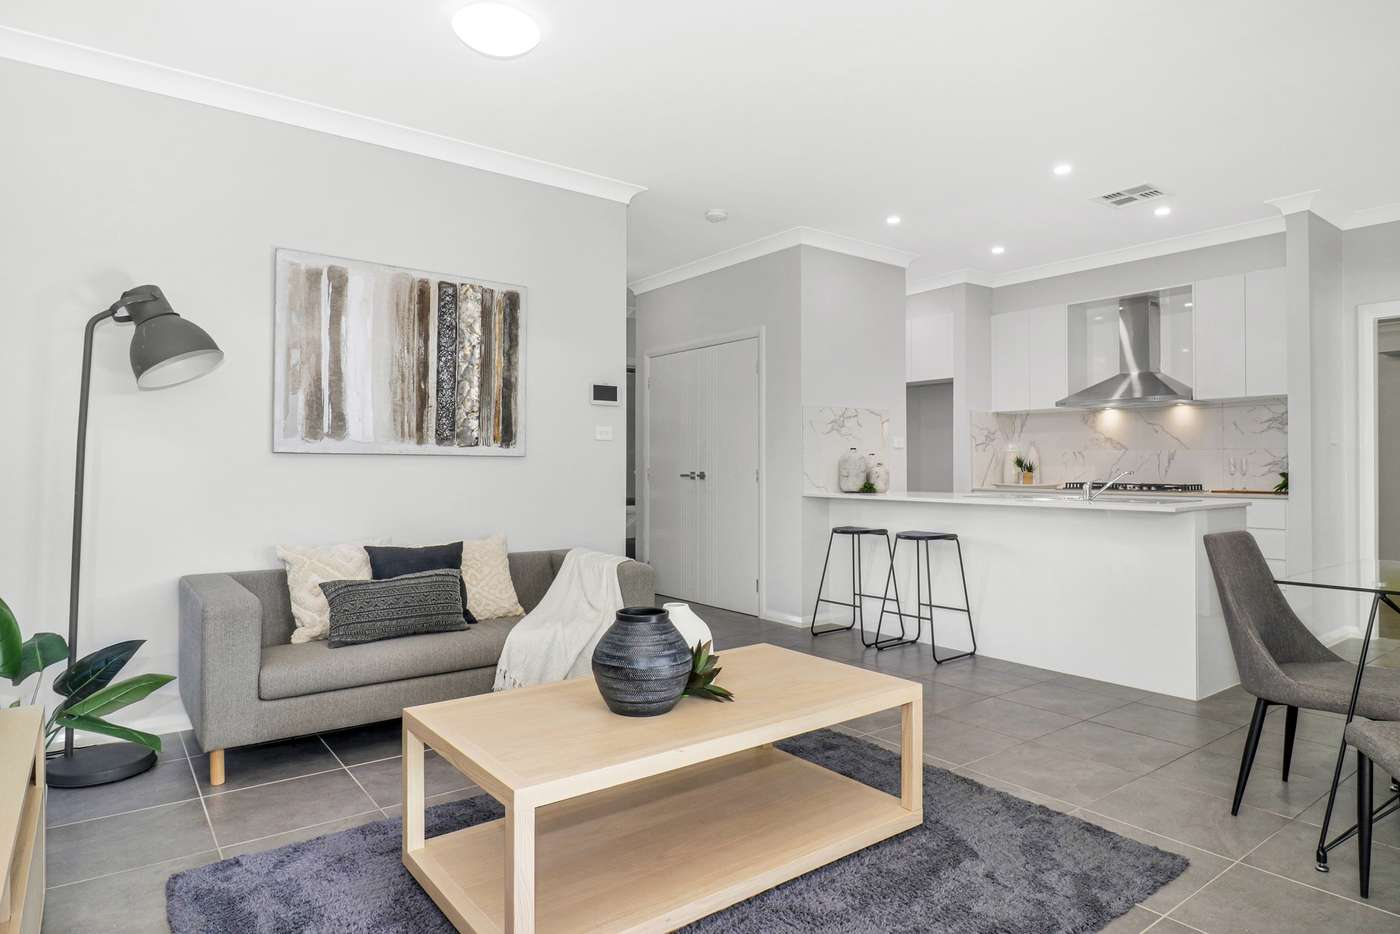 Fifth view of Homely house listing, 73 Fanflower Avenue, Leppington NSW 2179